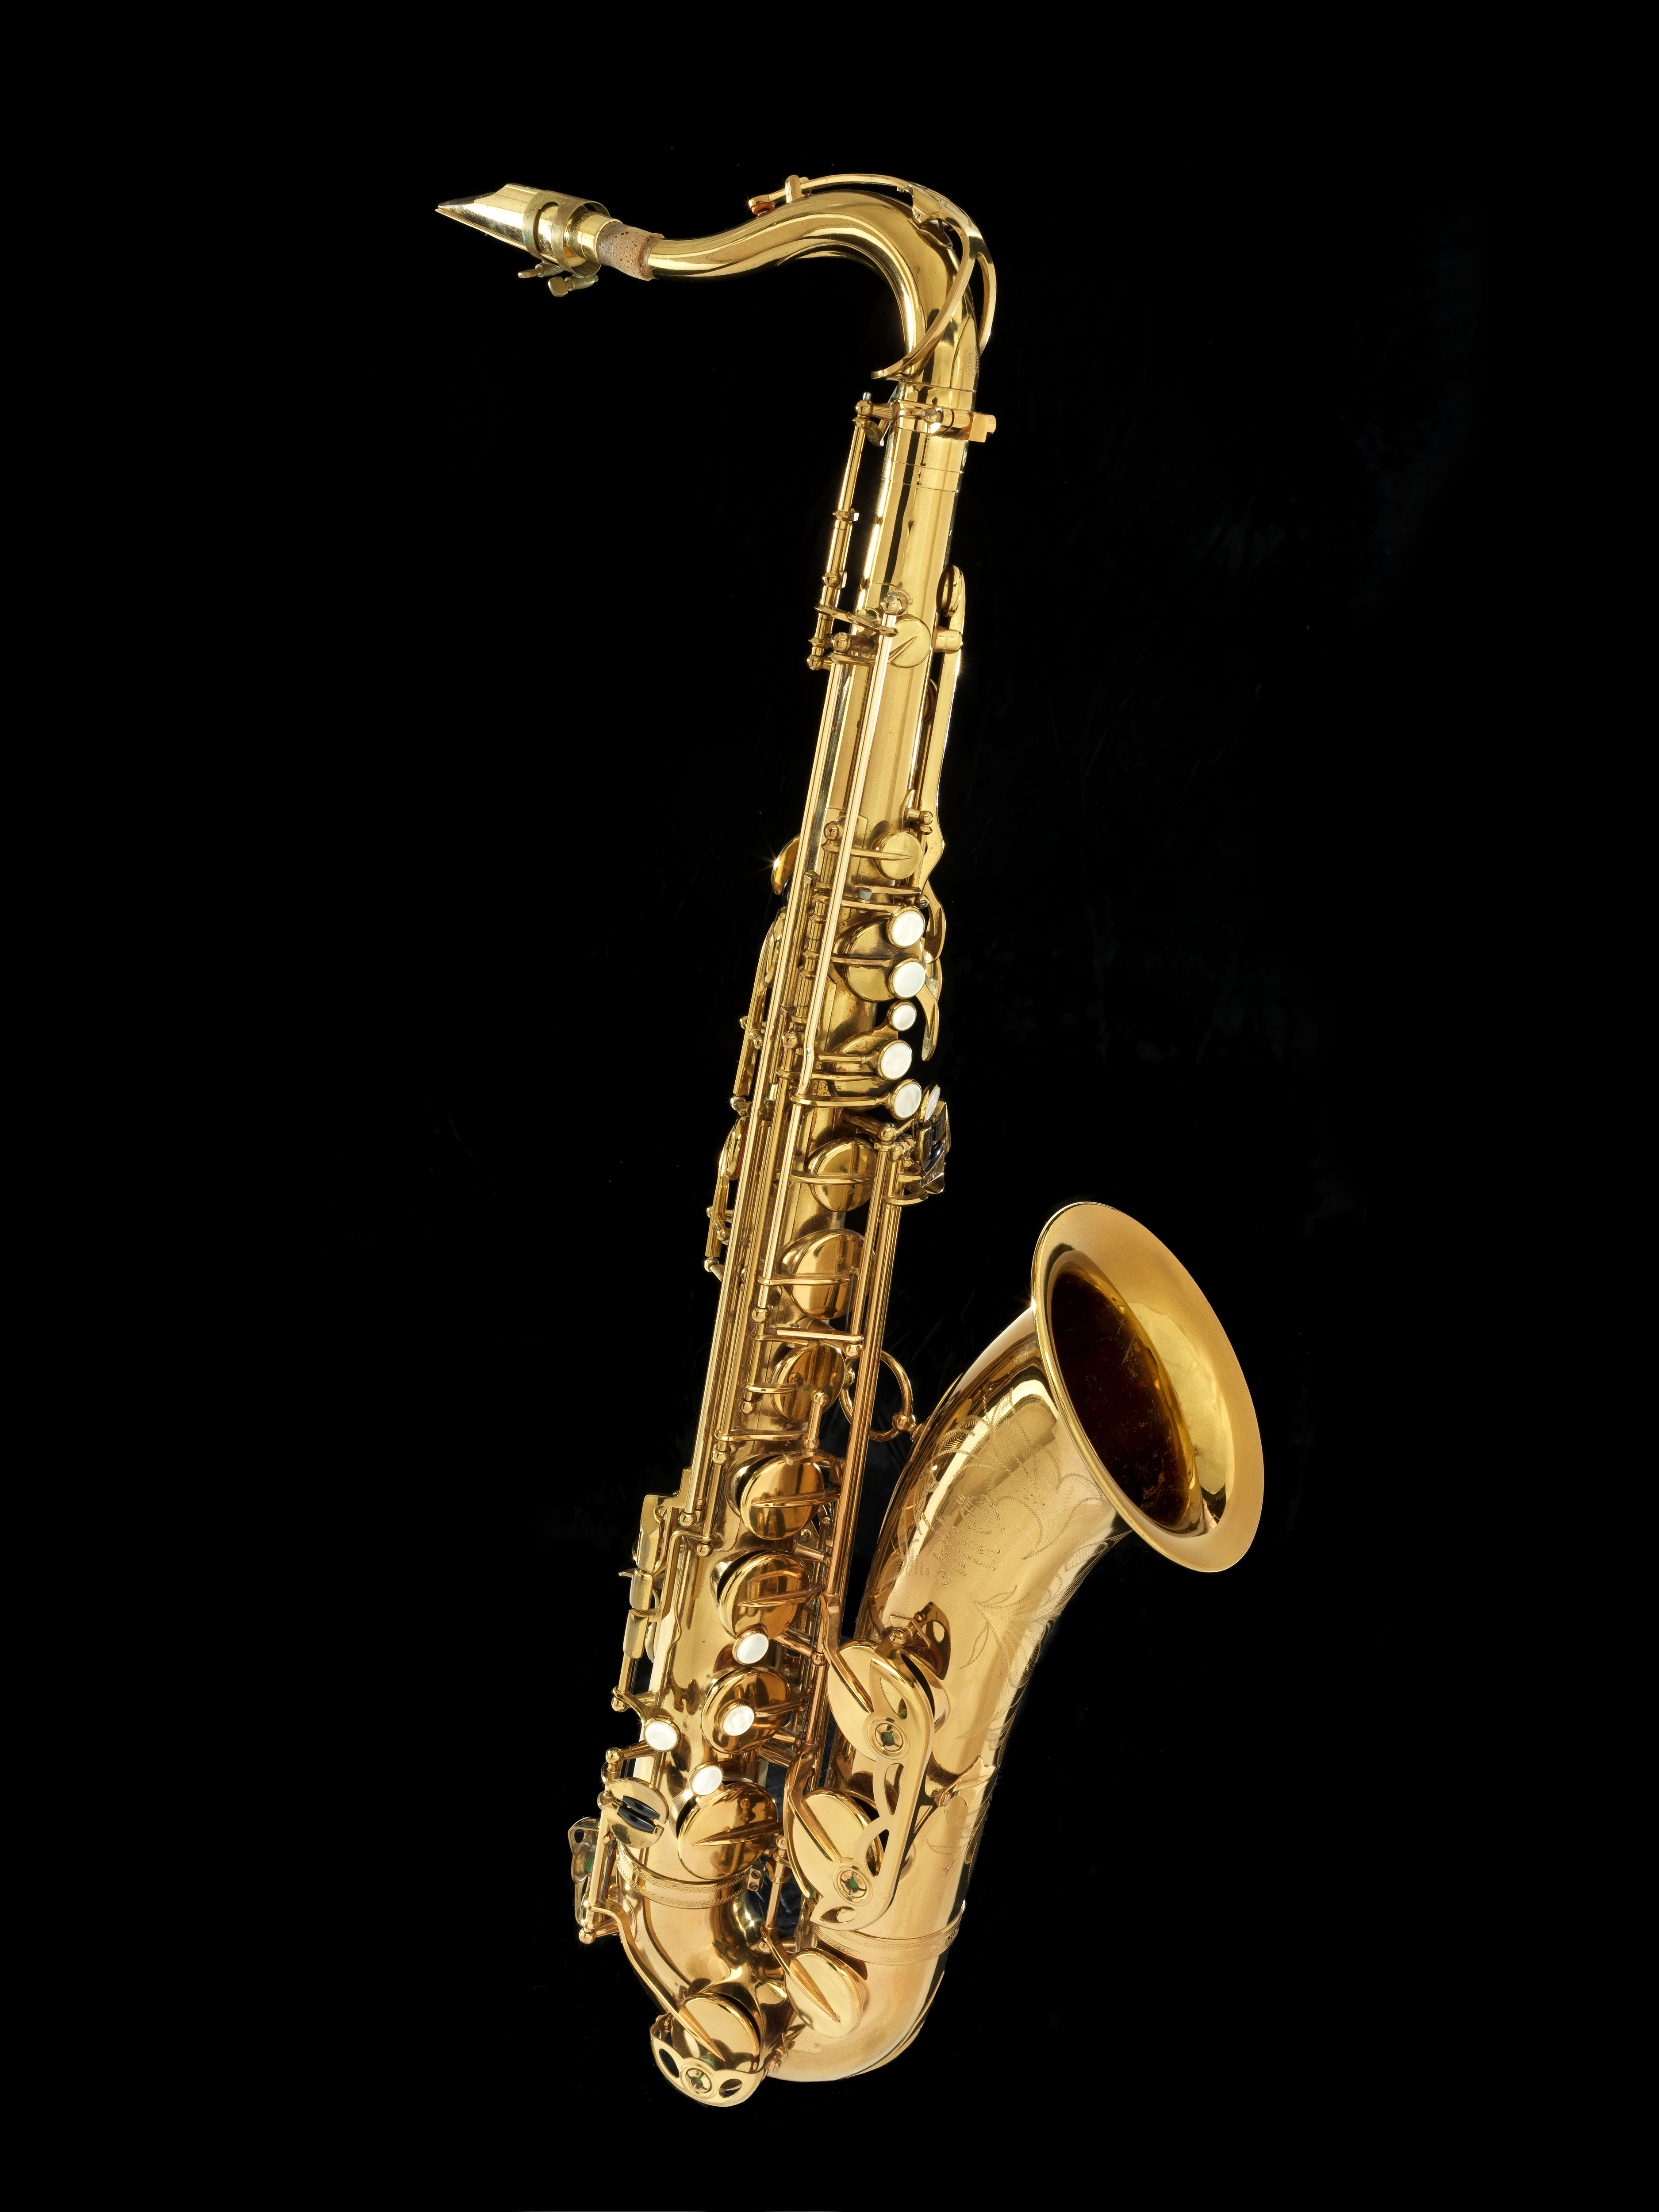 HQ Saxophone Wallpapers   File 4105.95Kb